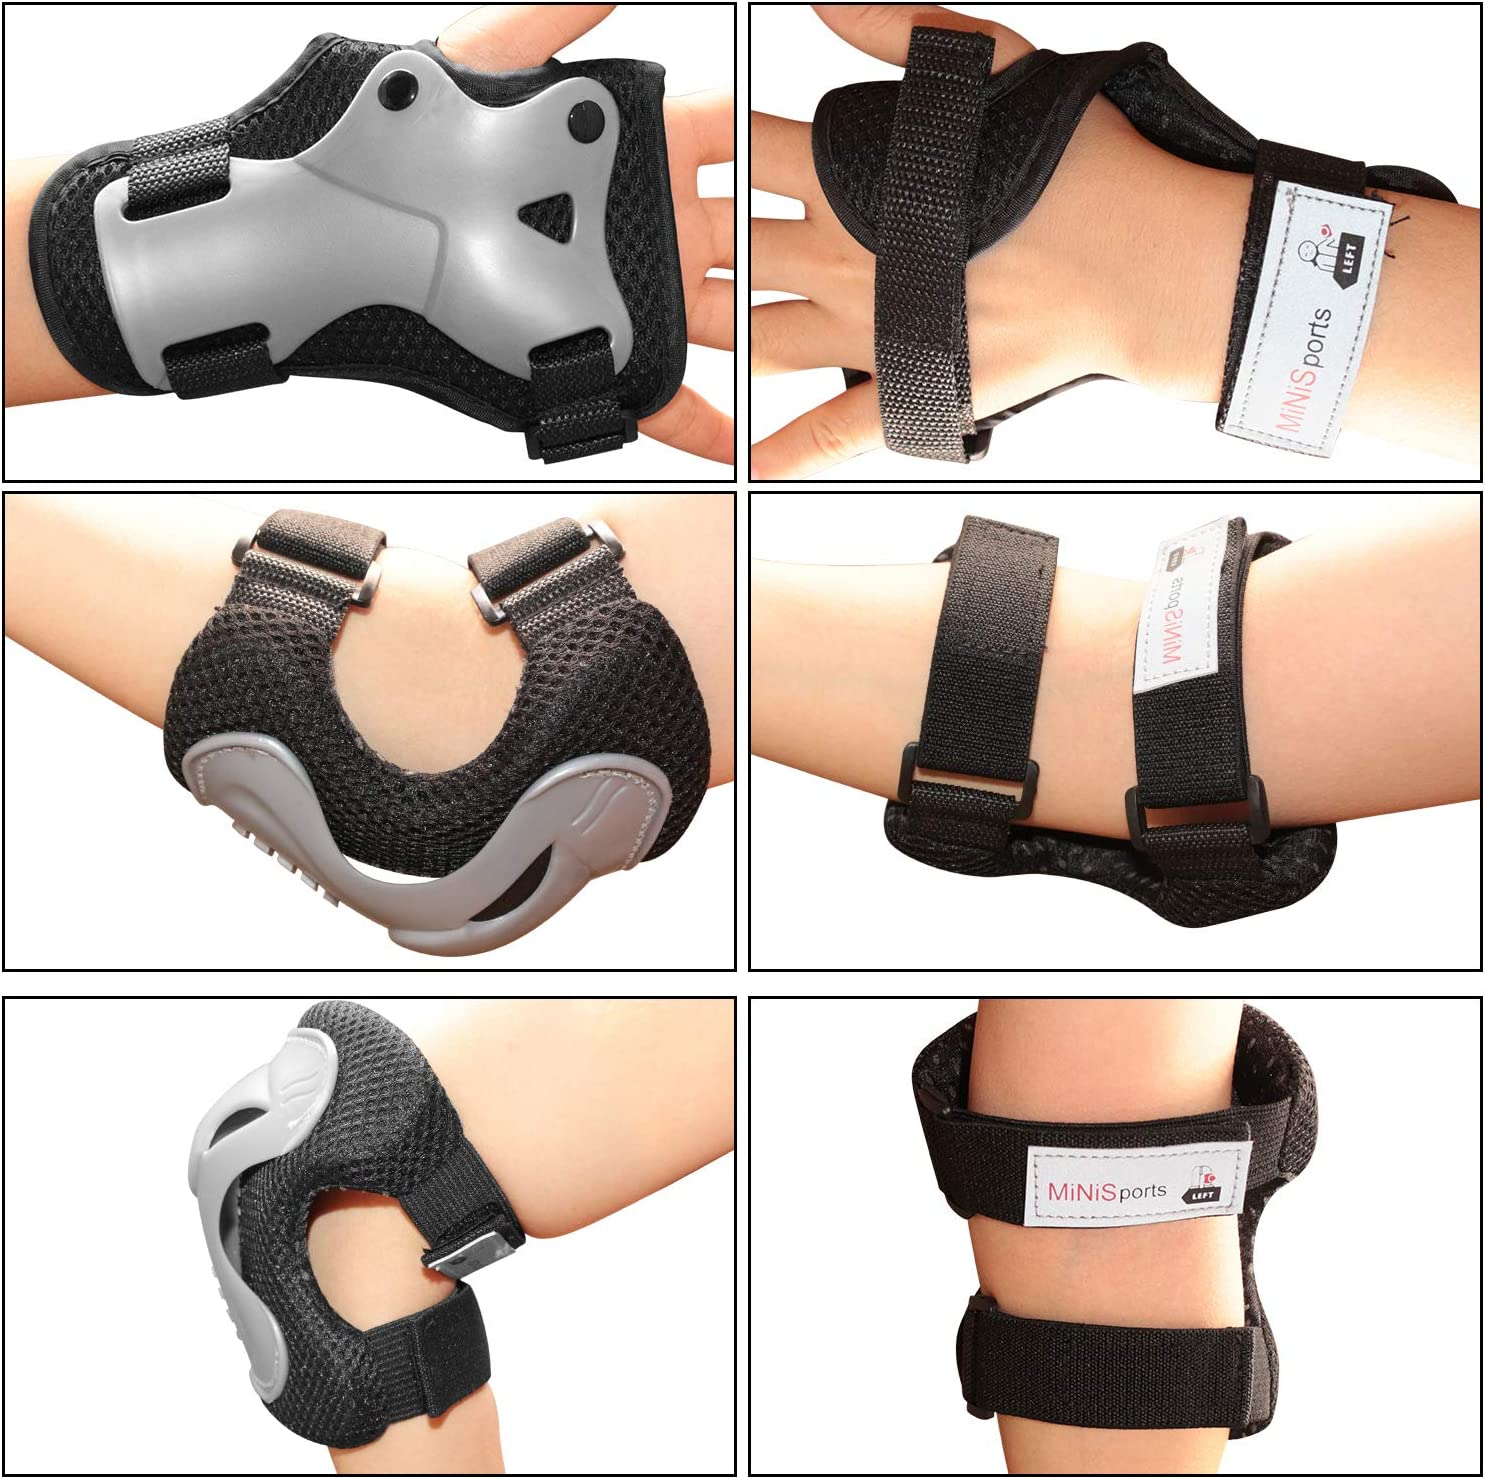 Toddler Knee and Elbow Pads with Wrist Guards for Rollerblade Roller Skates Cycling BMX Bike Skateboard Inline Skatings Scooter Riding Sports XUCOO Kids Protective Gear 6 in 1 Set